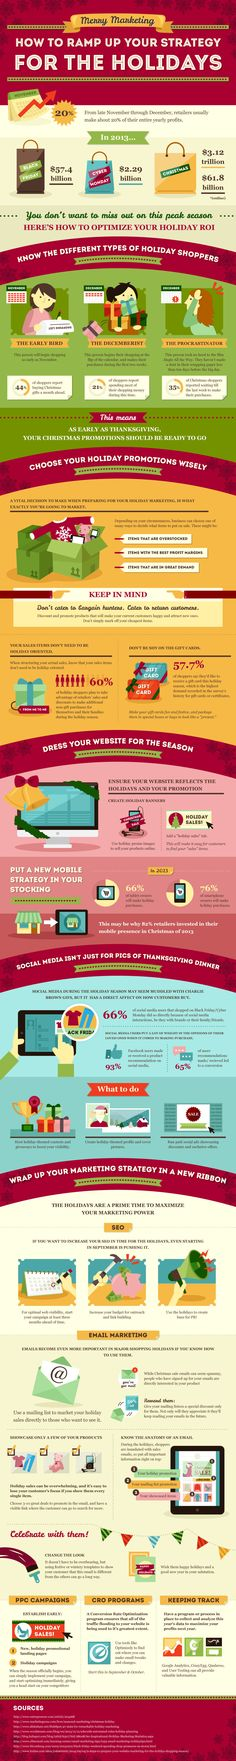 How to give your Holiday Marketing Campaign a boost Using Social Media And Search engine optimization techniques - #infographic #socialmedia #SEO